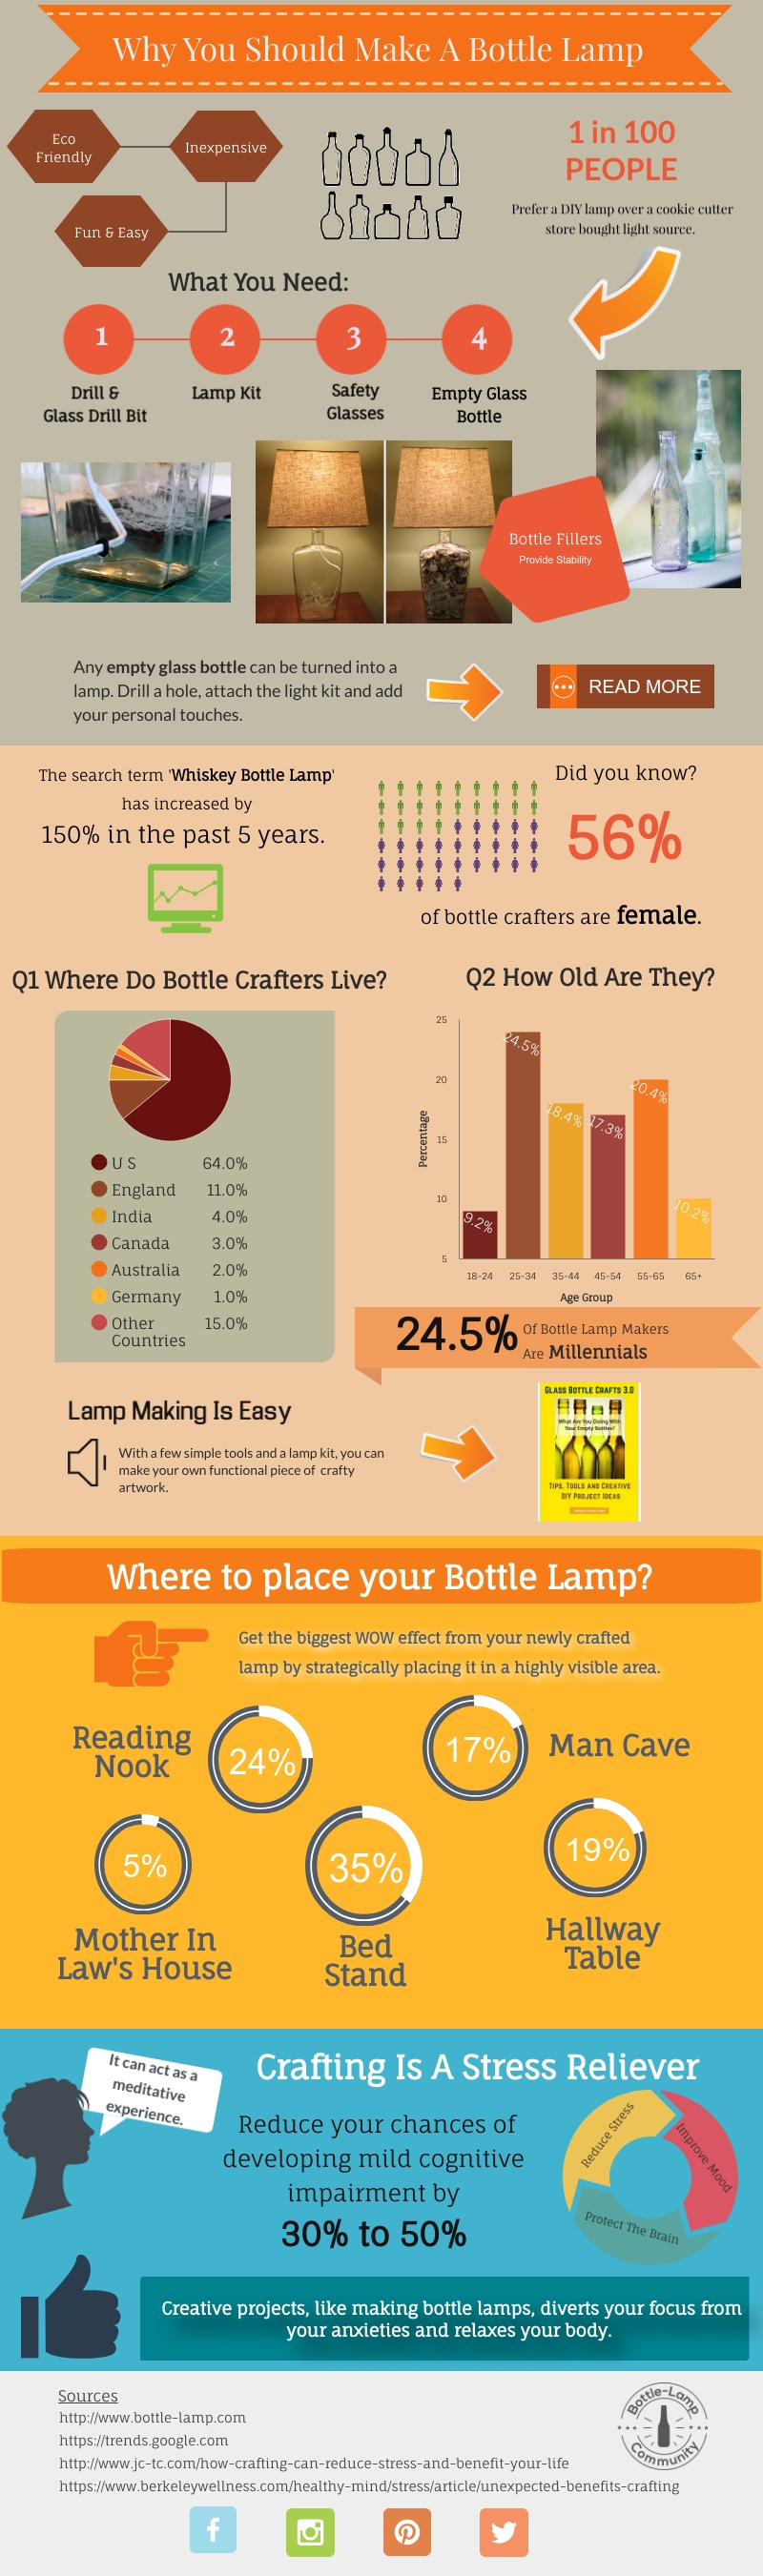 Why make bottle lamps?